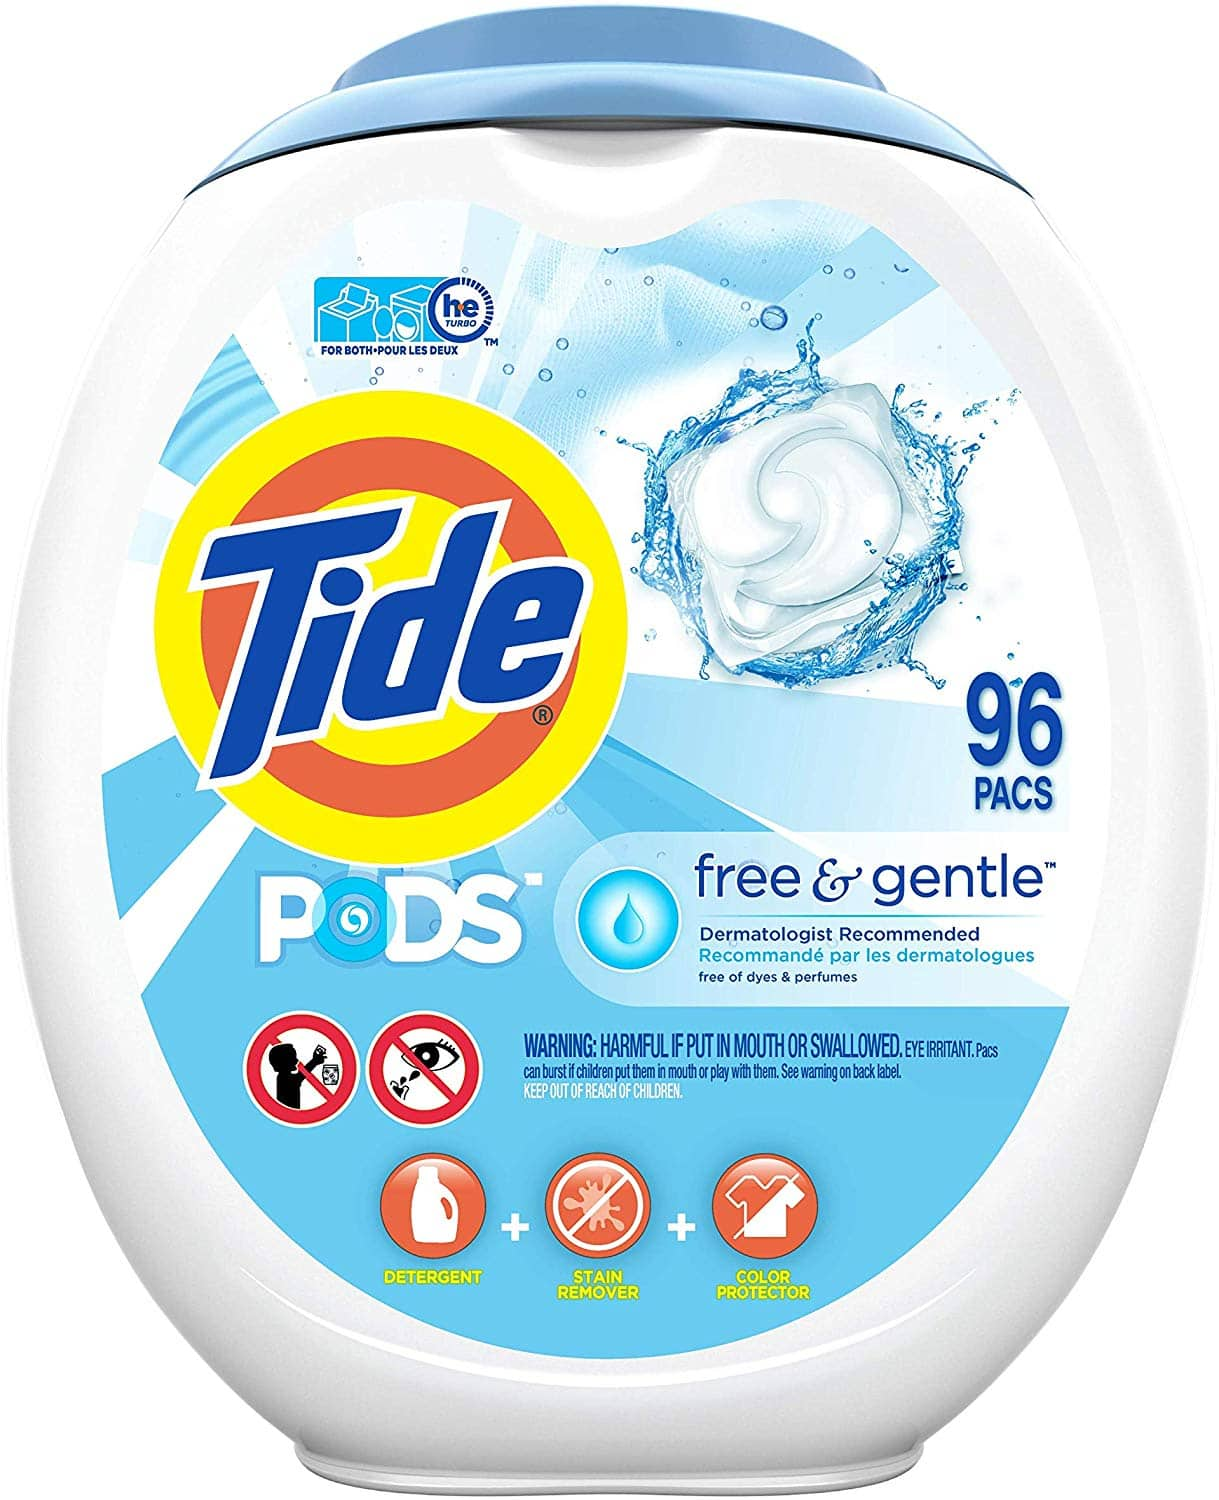 96 Count Tide PODS Free and Gentle Laundry Detergent - $14.27 - after $3.95 coupon and 15% s&s, $16.42 w/5% s&s